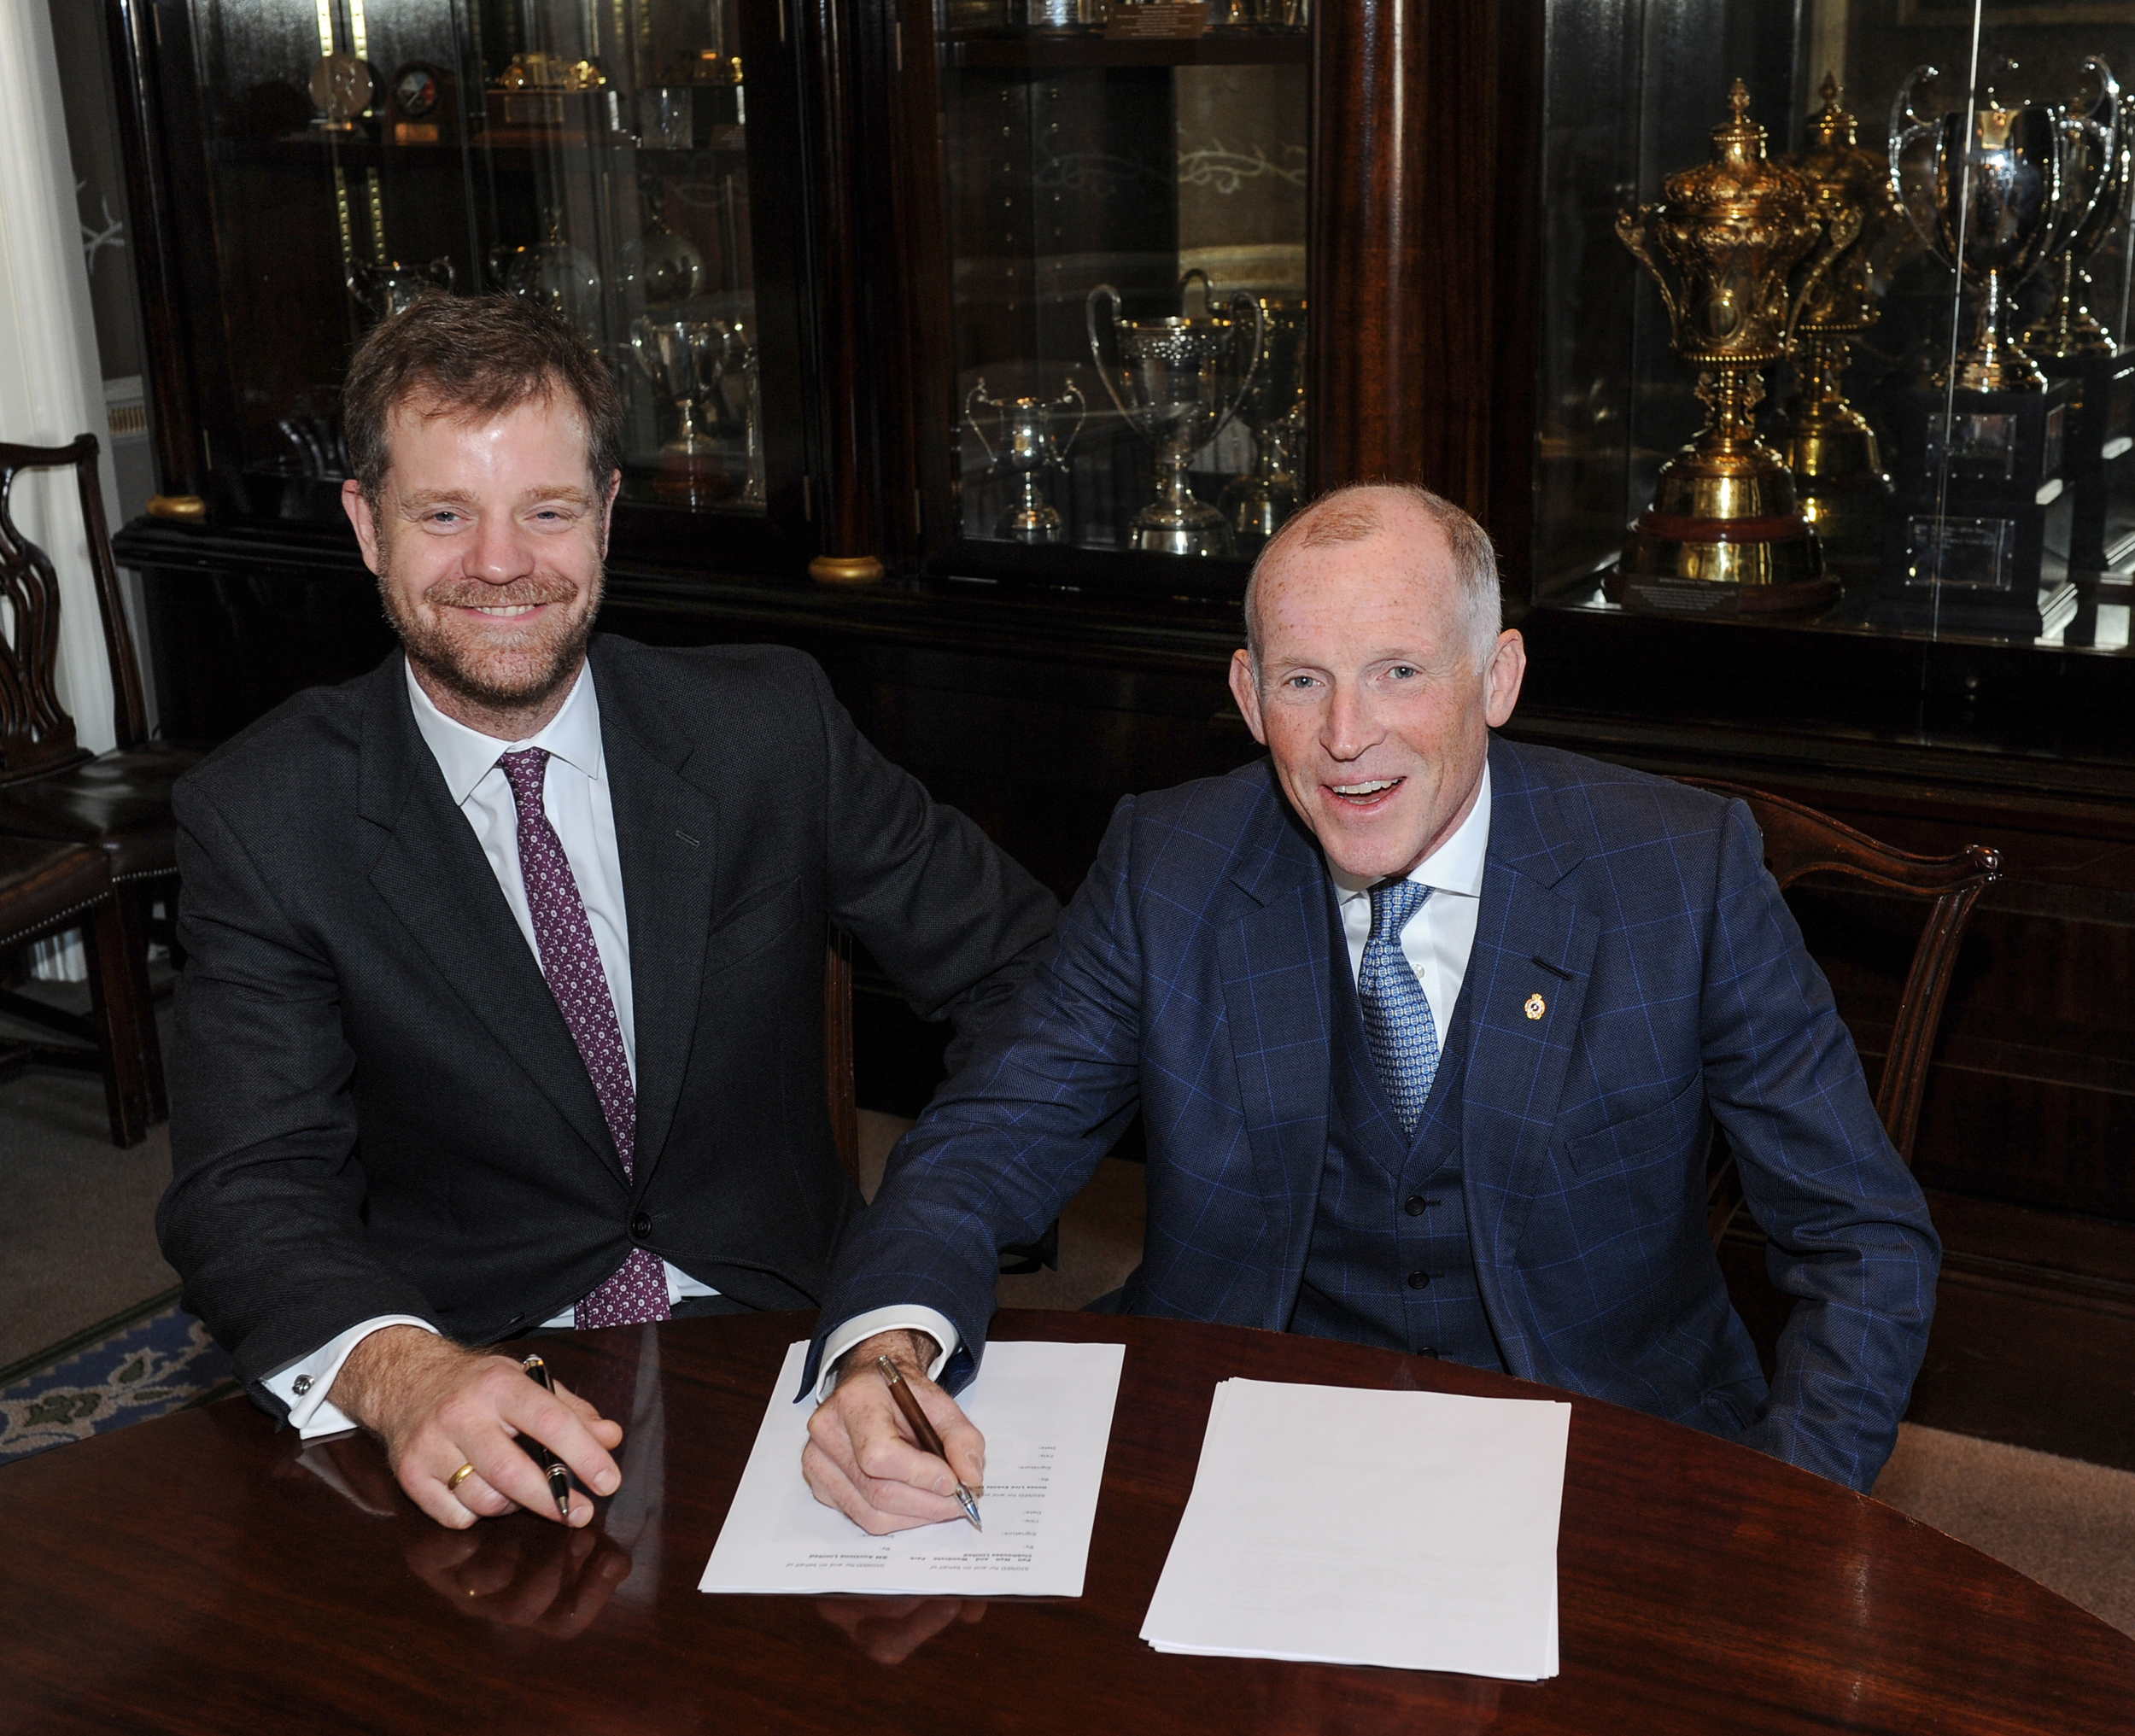 200130 Maarten RM Sotheby's (left above) and Ben Cussons Chairman of the Royal Automobile Club